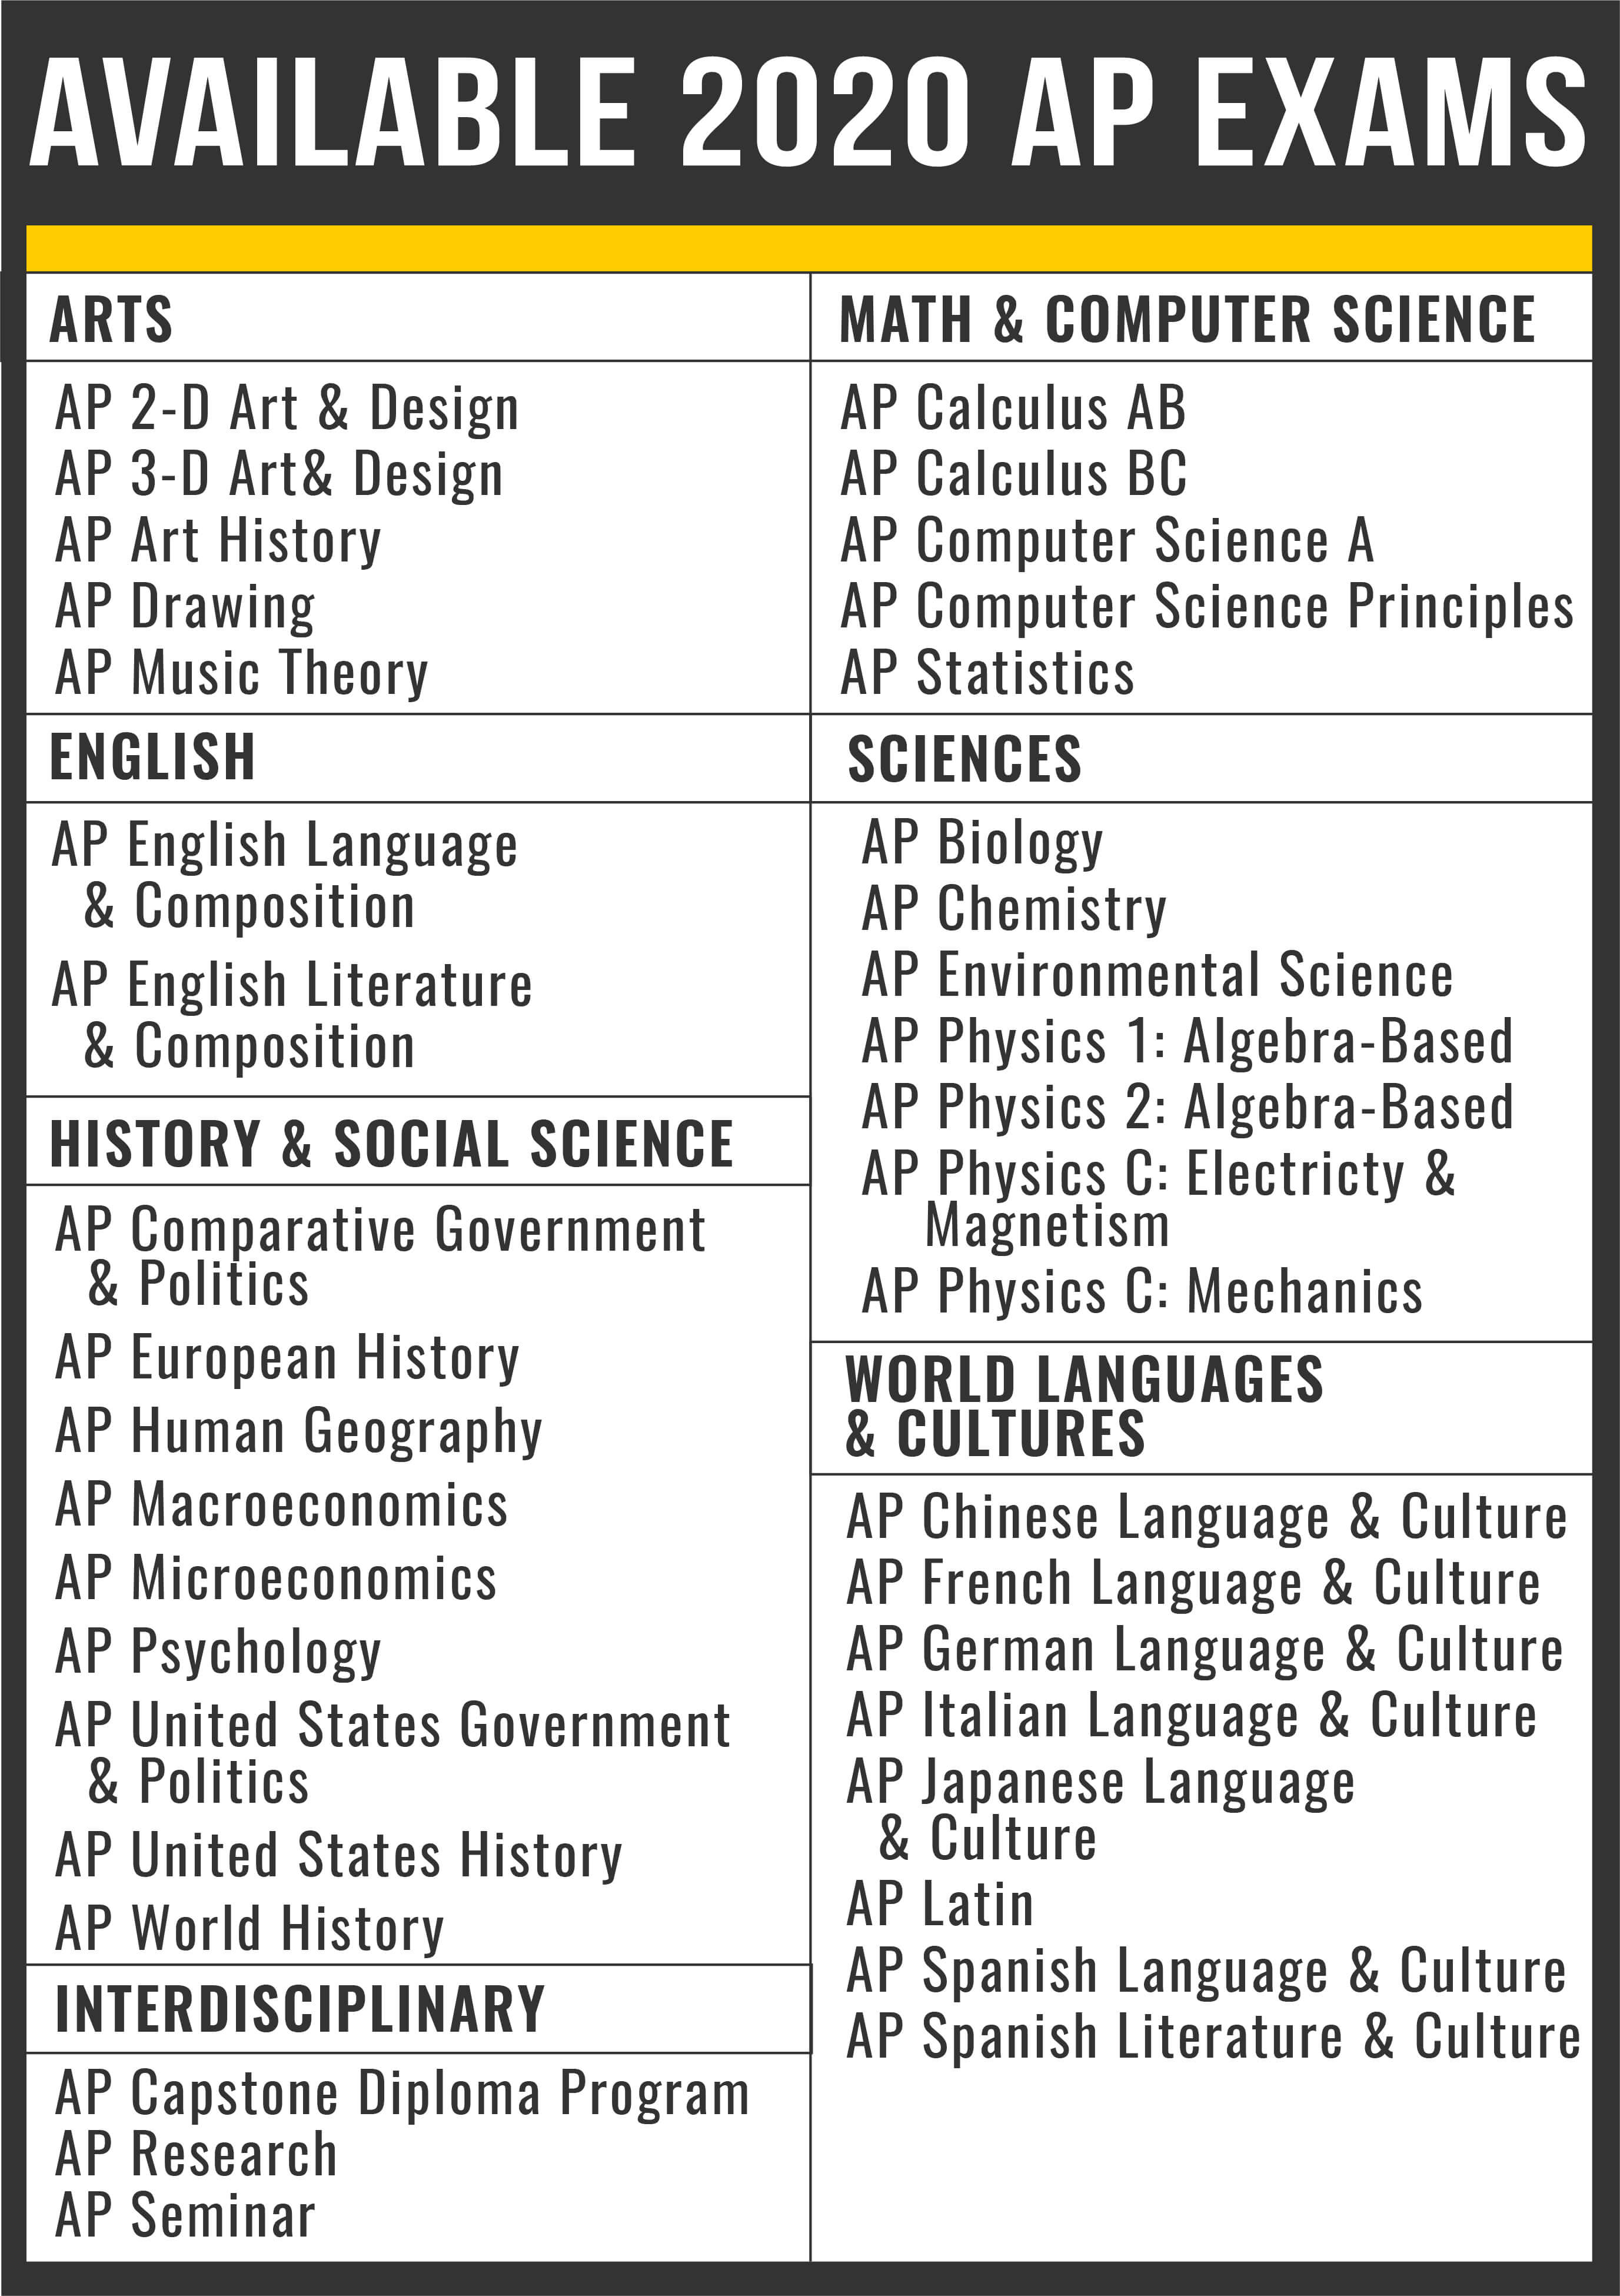 Available 2020 AP Exams